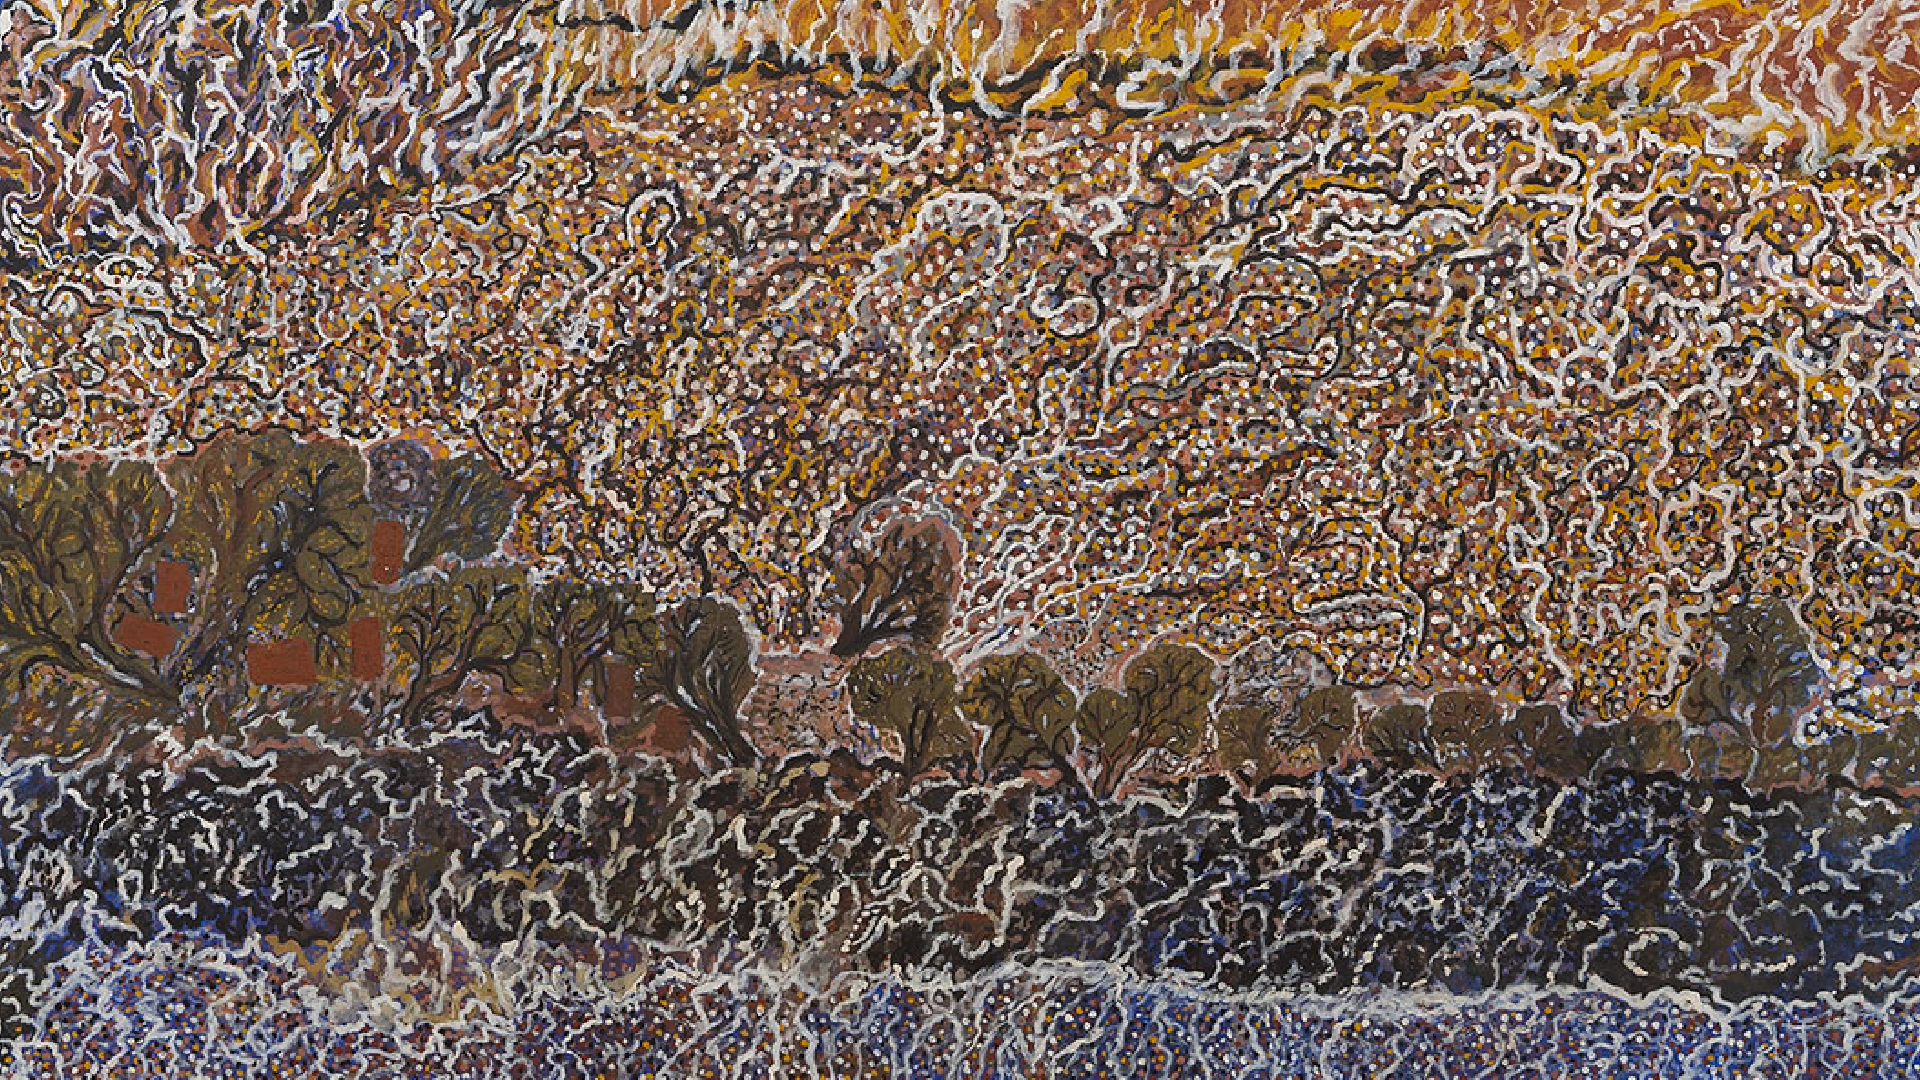 Mavis Ngallametta, detail of Bush Fire Burning at Kuchendoopen, 2015, natural ochres and charcoal with acrylic binder on linen, 271 x 200cm. Courtesy of the collection of Peter Lamell and Jane Campton, Melbourne.